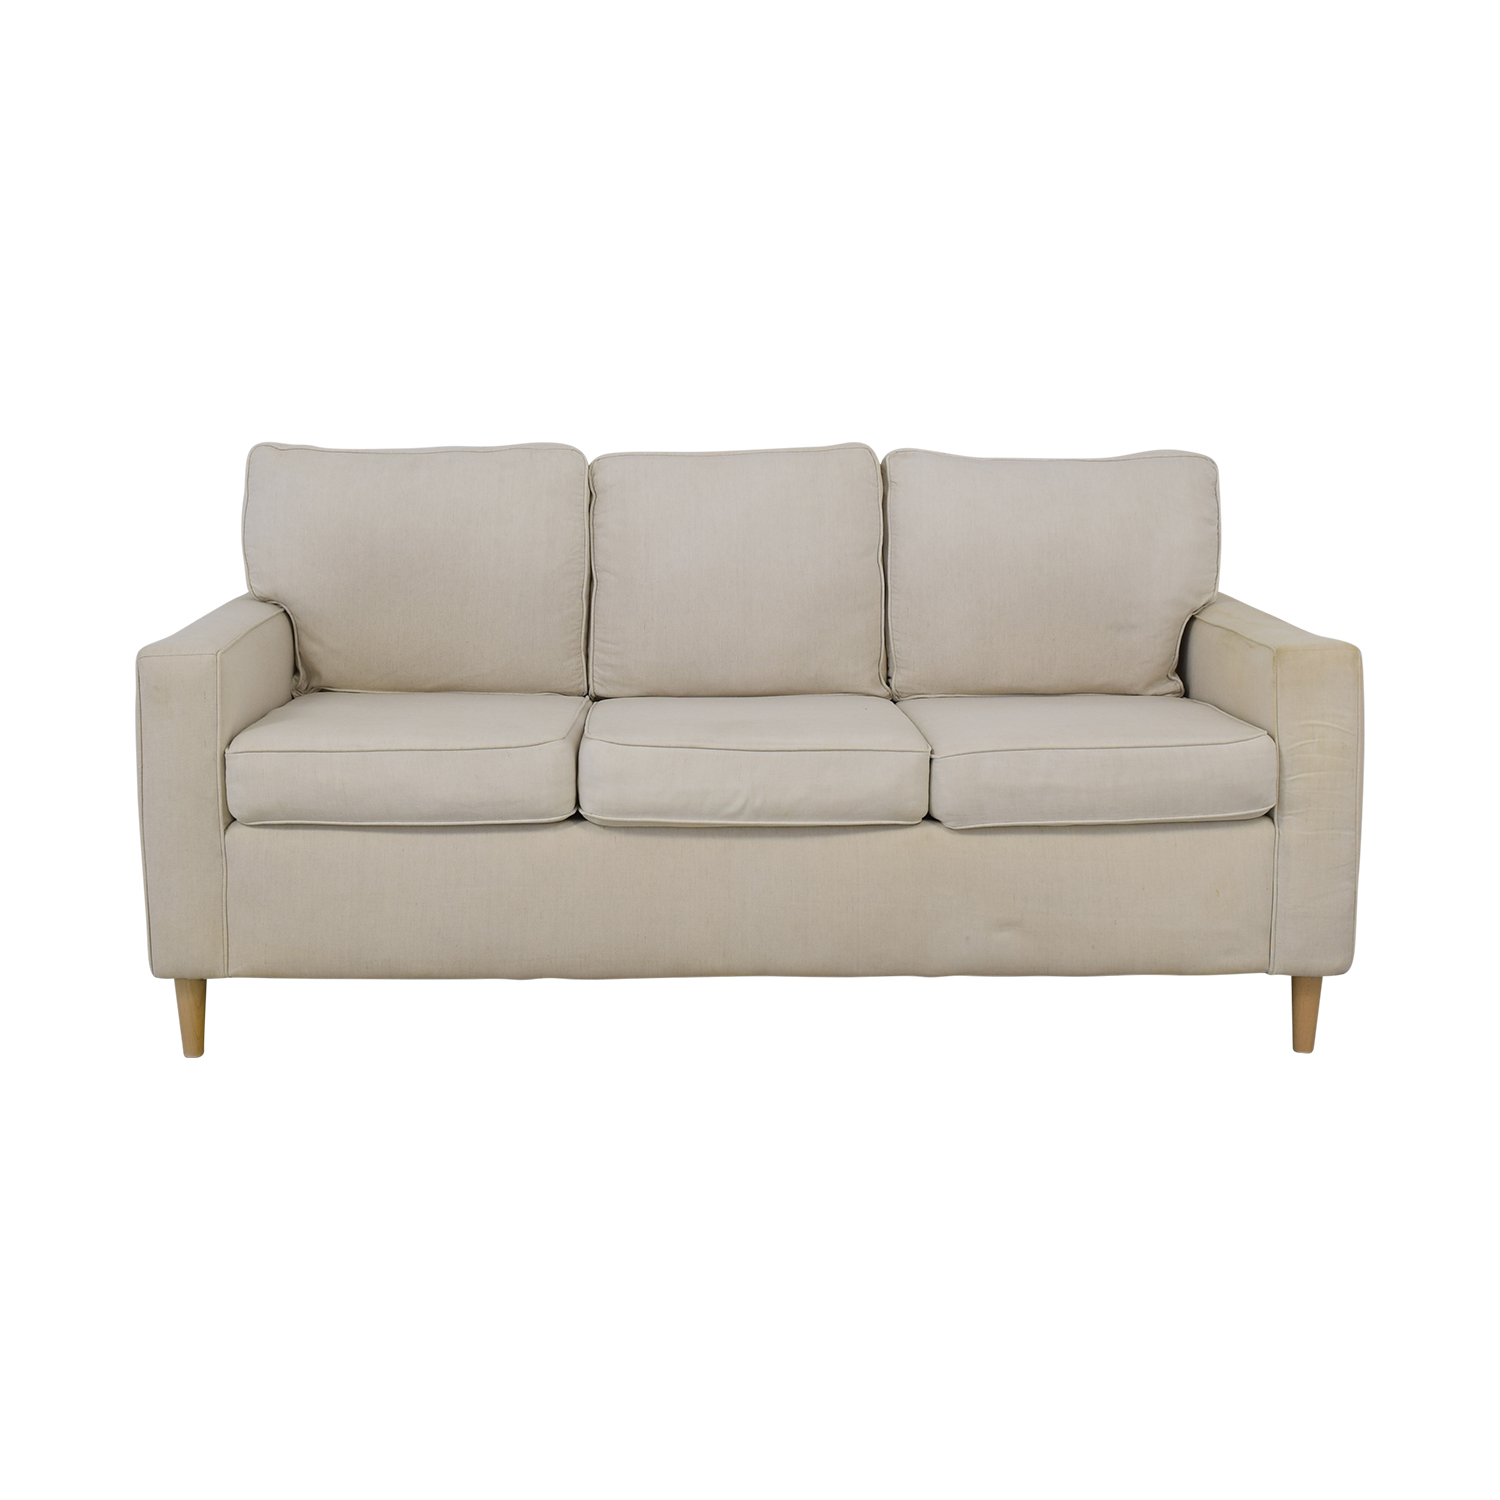 Rowe Furniture Rowe Furniture Monaco Sofa on sale